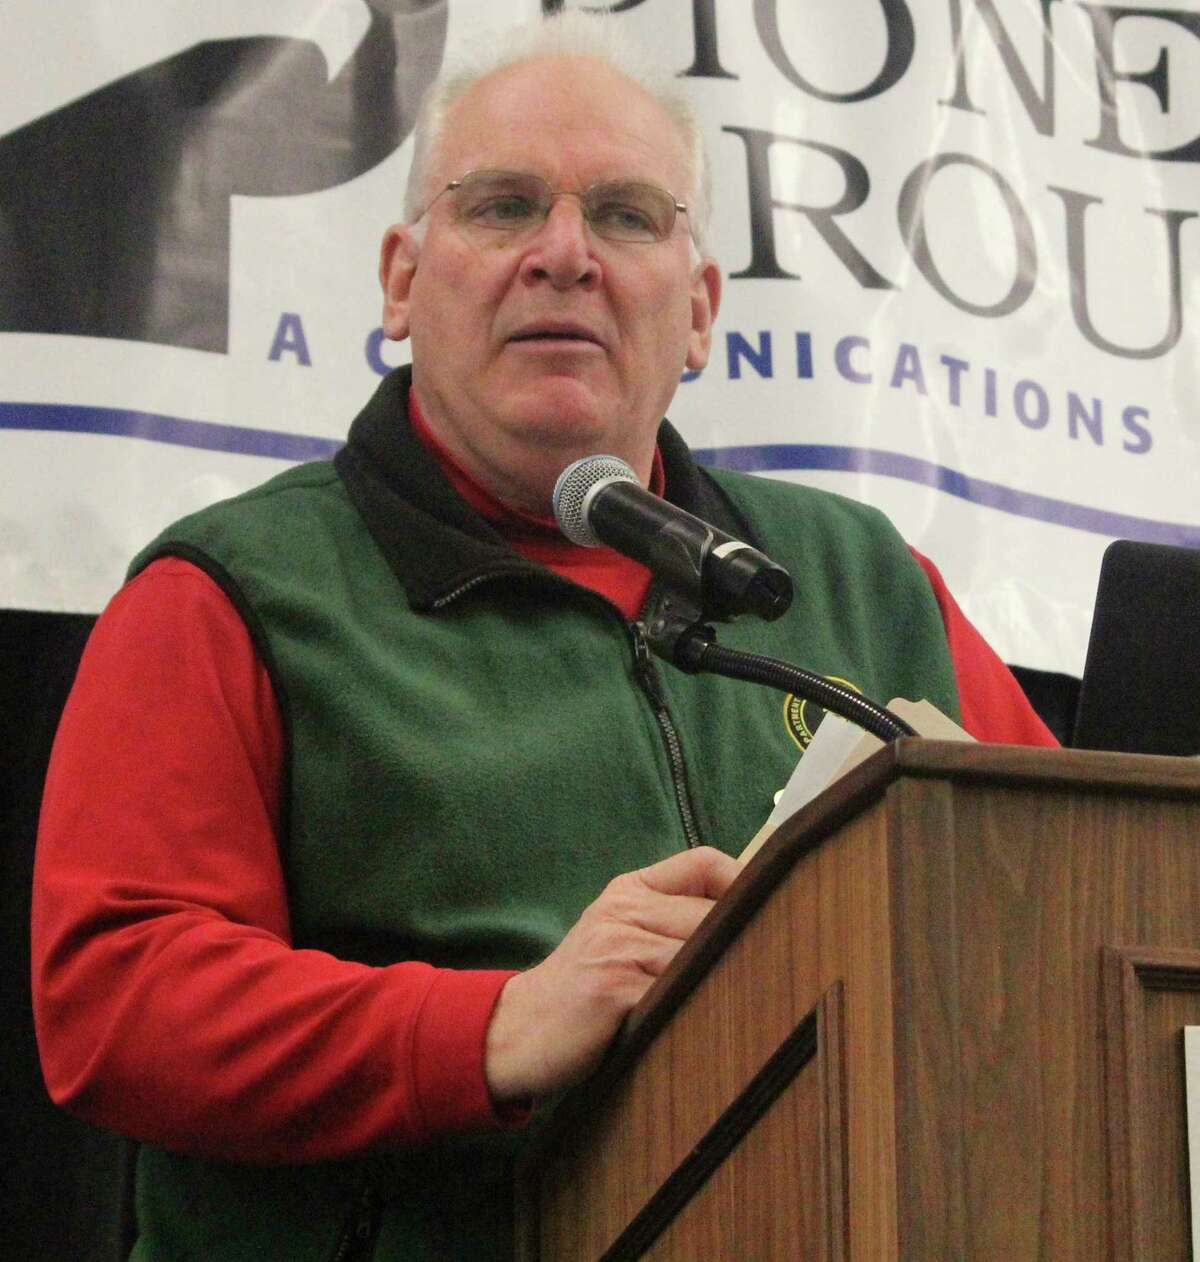 Pete Kailing is an area DNR wildlife biologist. (Herald Review file photo)